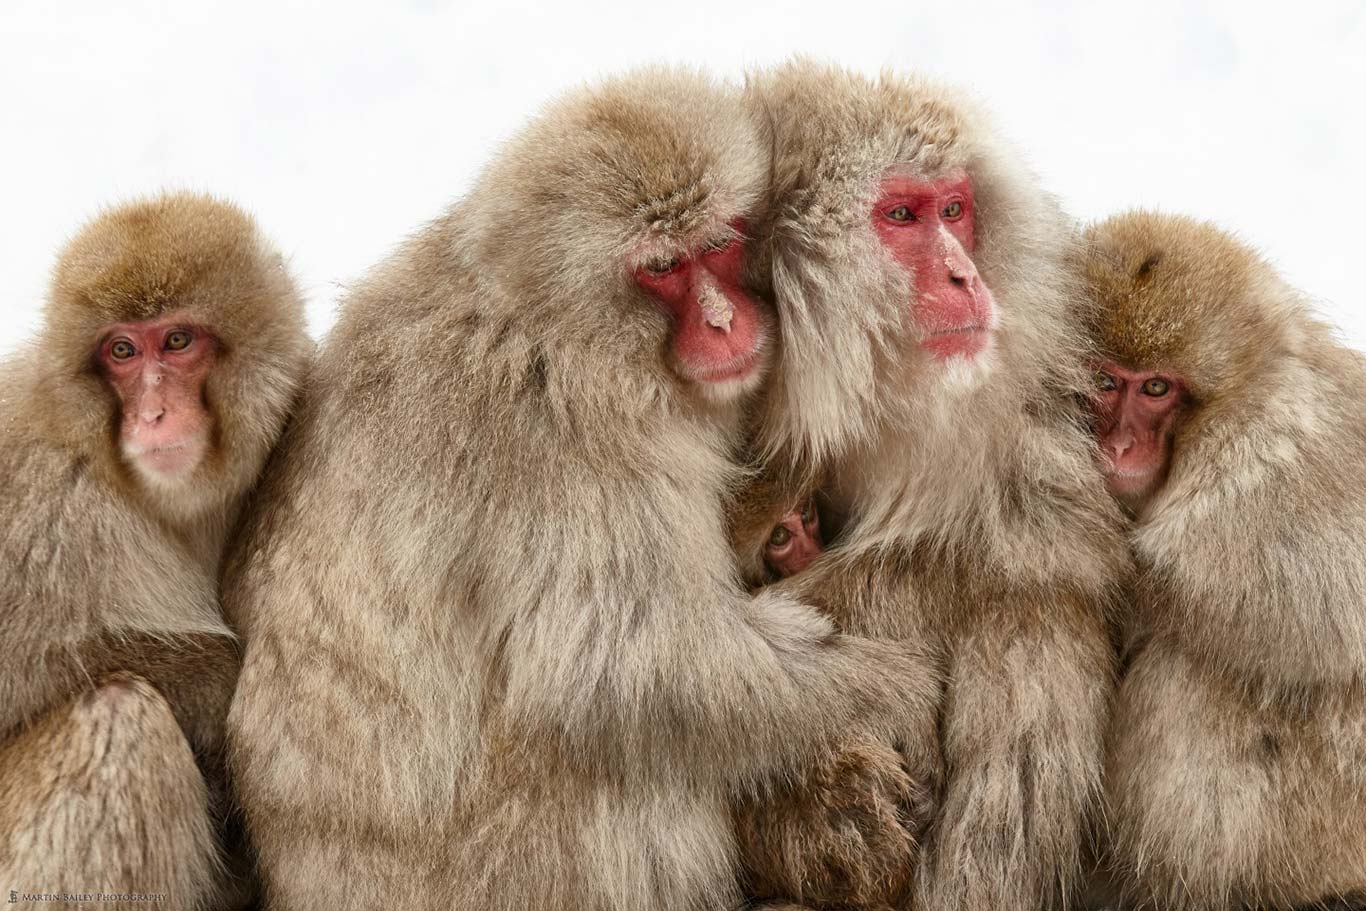 snow monkeys in japan by Martin Bailey